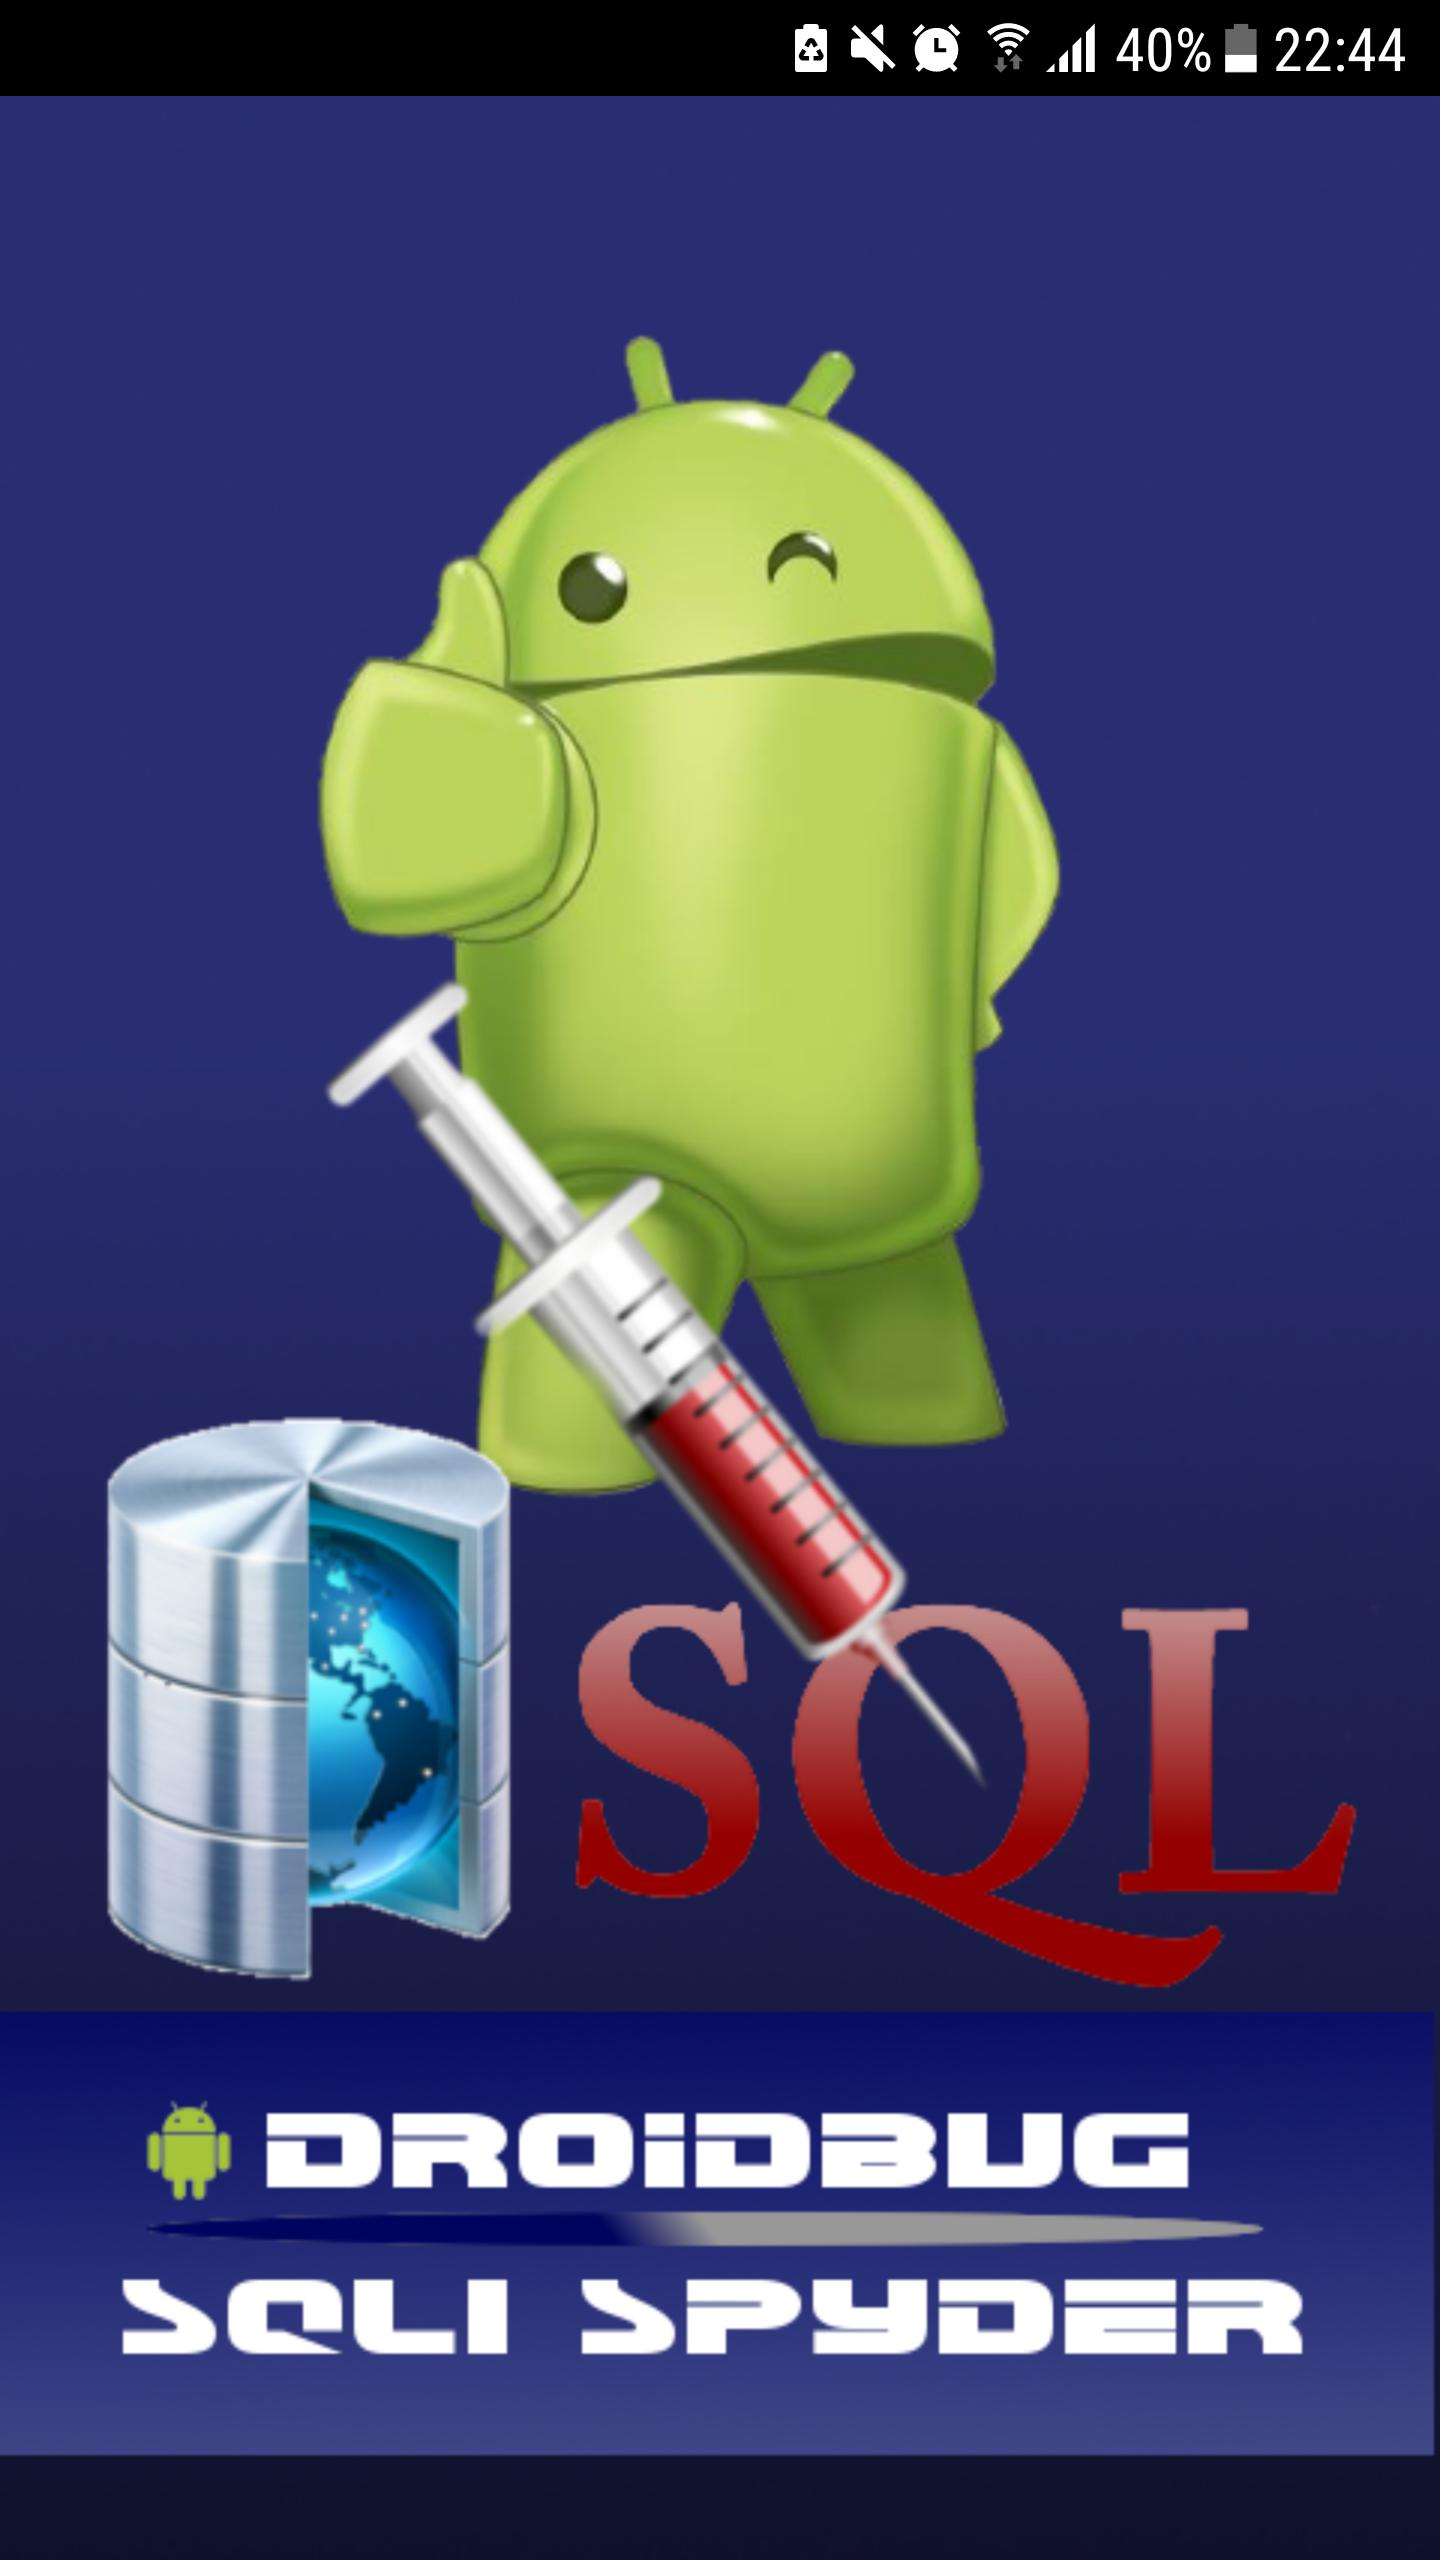 Droidbug SQLi Spyder FREE for Android - APK Download